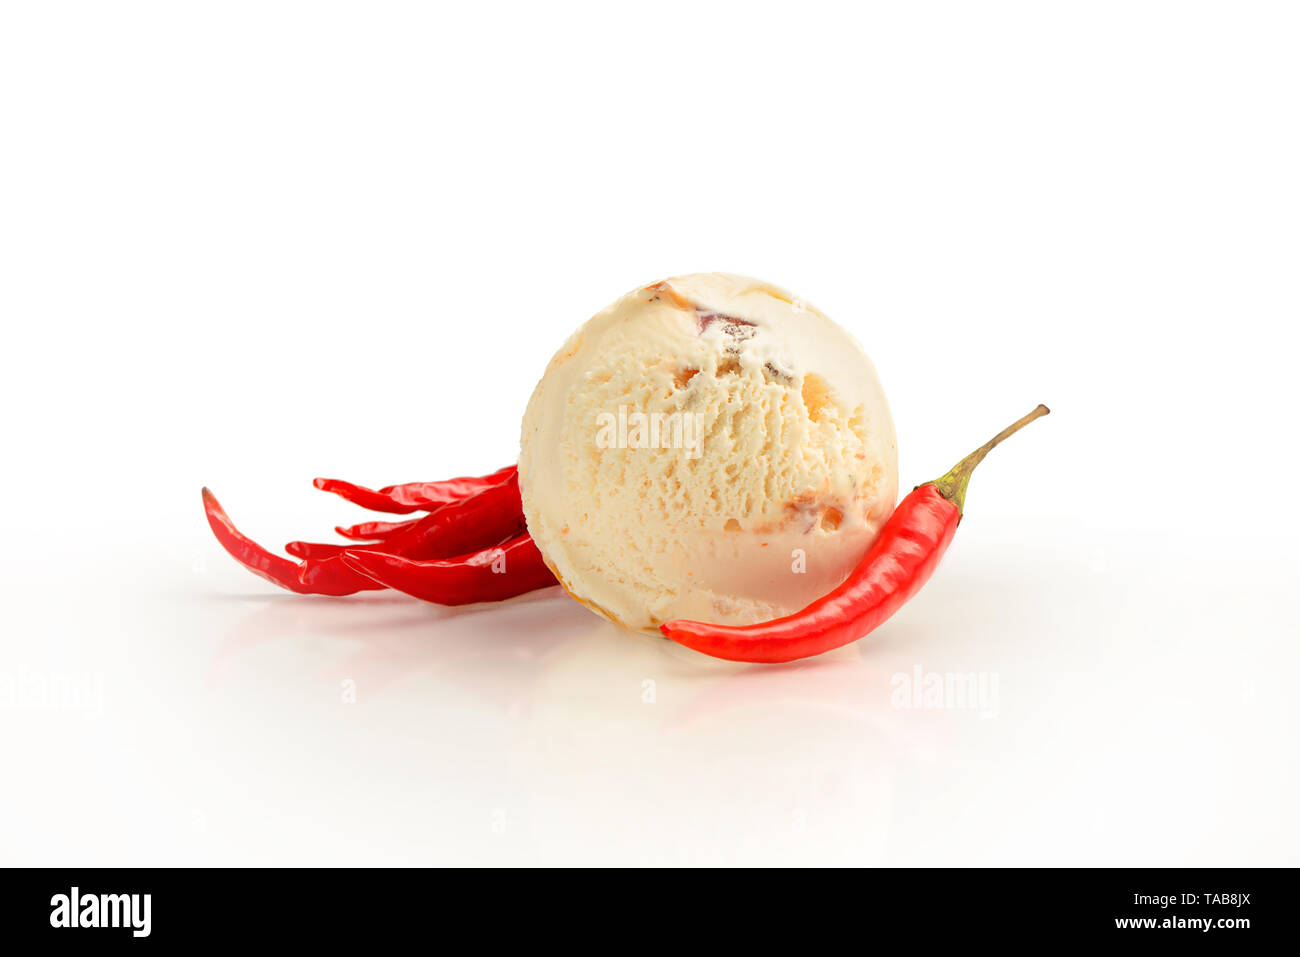 Ice cream ball, hot chili pepper and bacon and pine nuts flavor with ingredients, isolated on a white background. - Stock Image